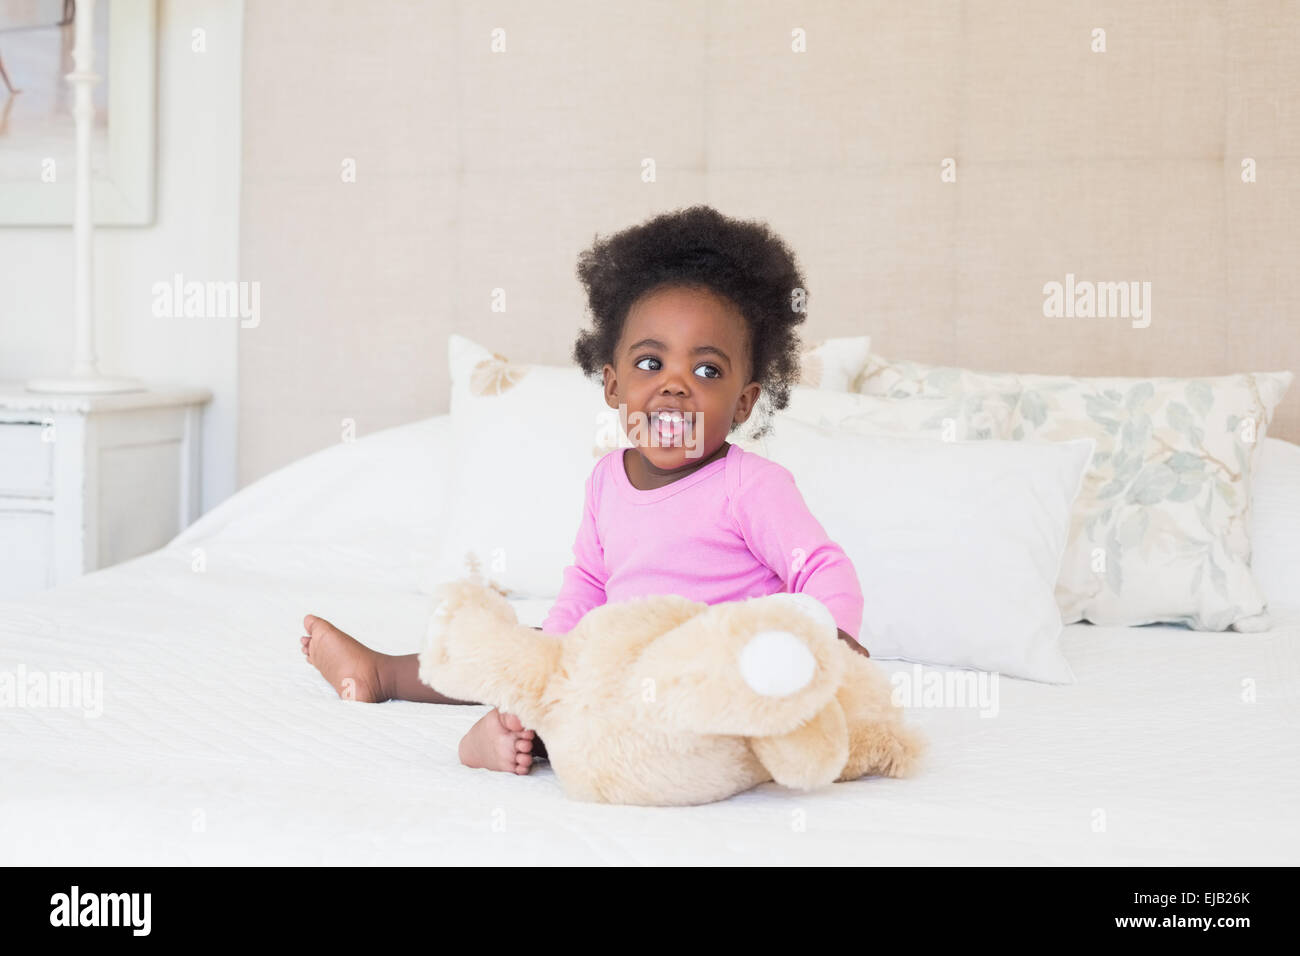 Baby girl in pink babygro sitting on bed - Stock Image